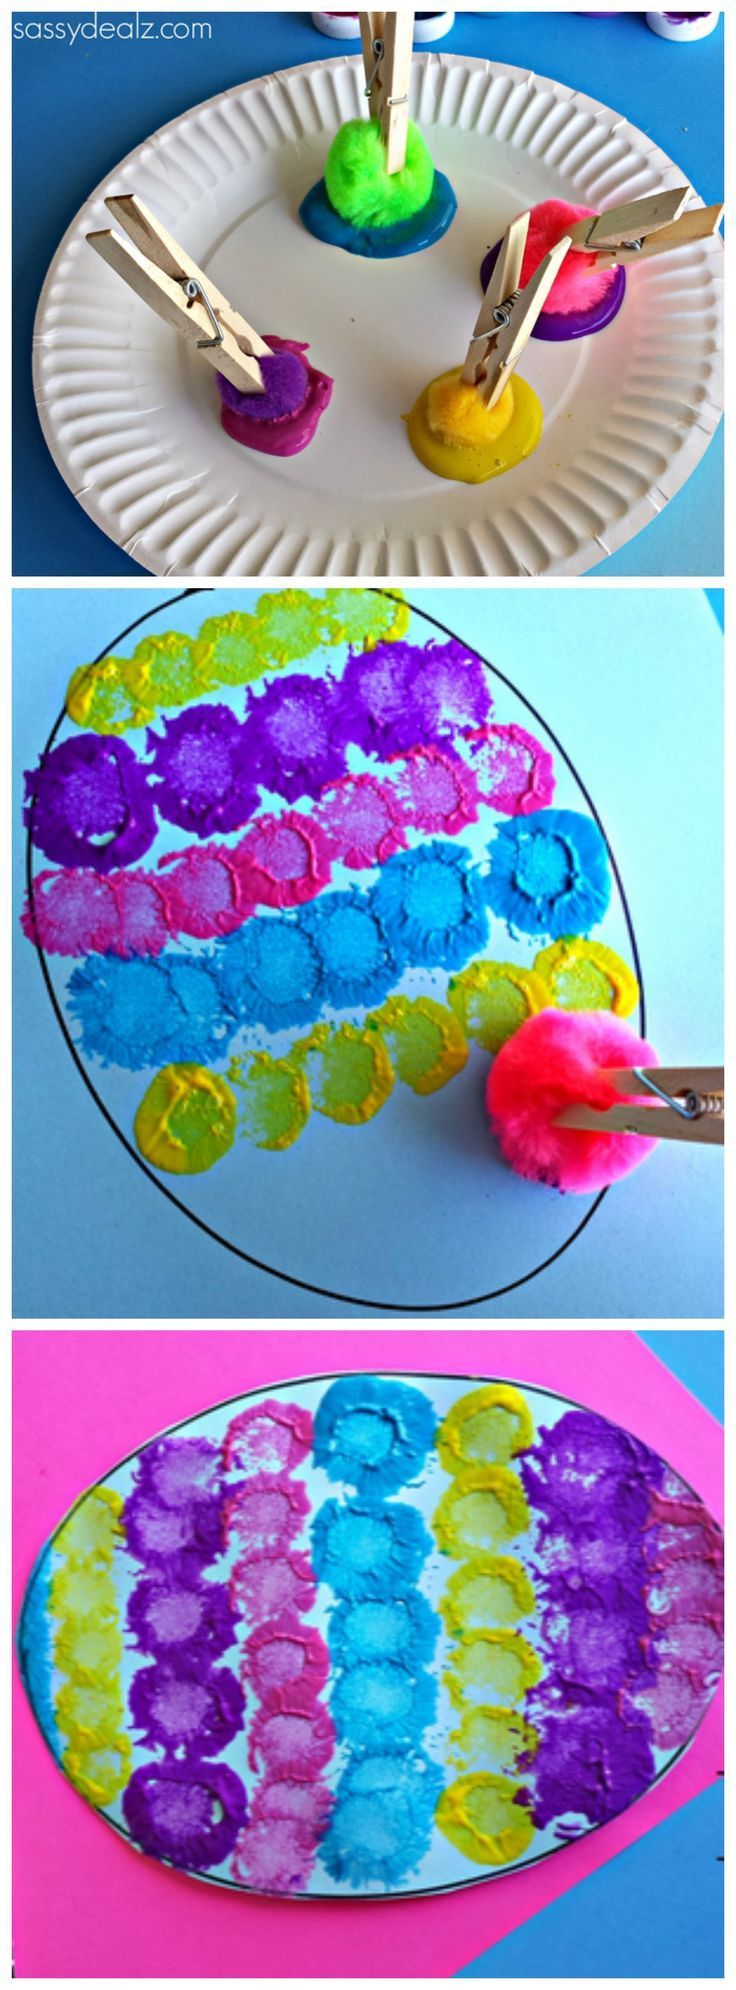 Easter Egg Paper Plate Craft  sc 1 st  Pinterest & Easter Egg Paper Plate Craft | Pre school | Pinterest | Paper plate ...